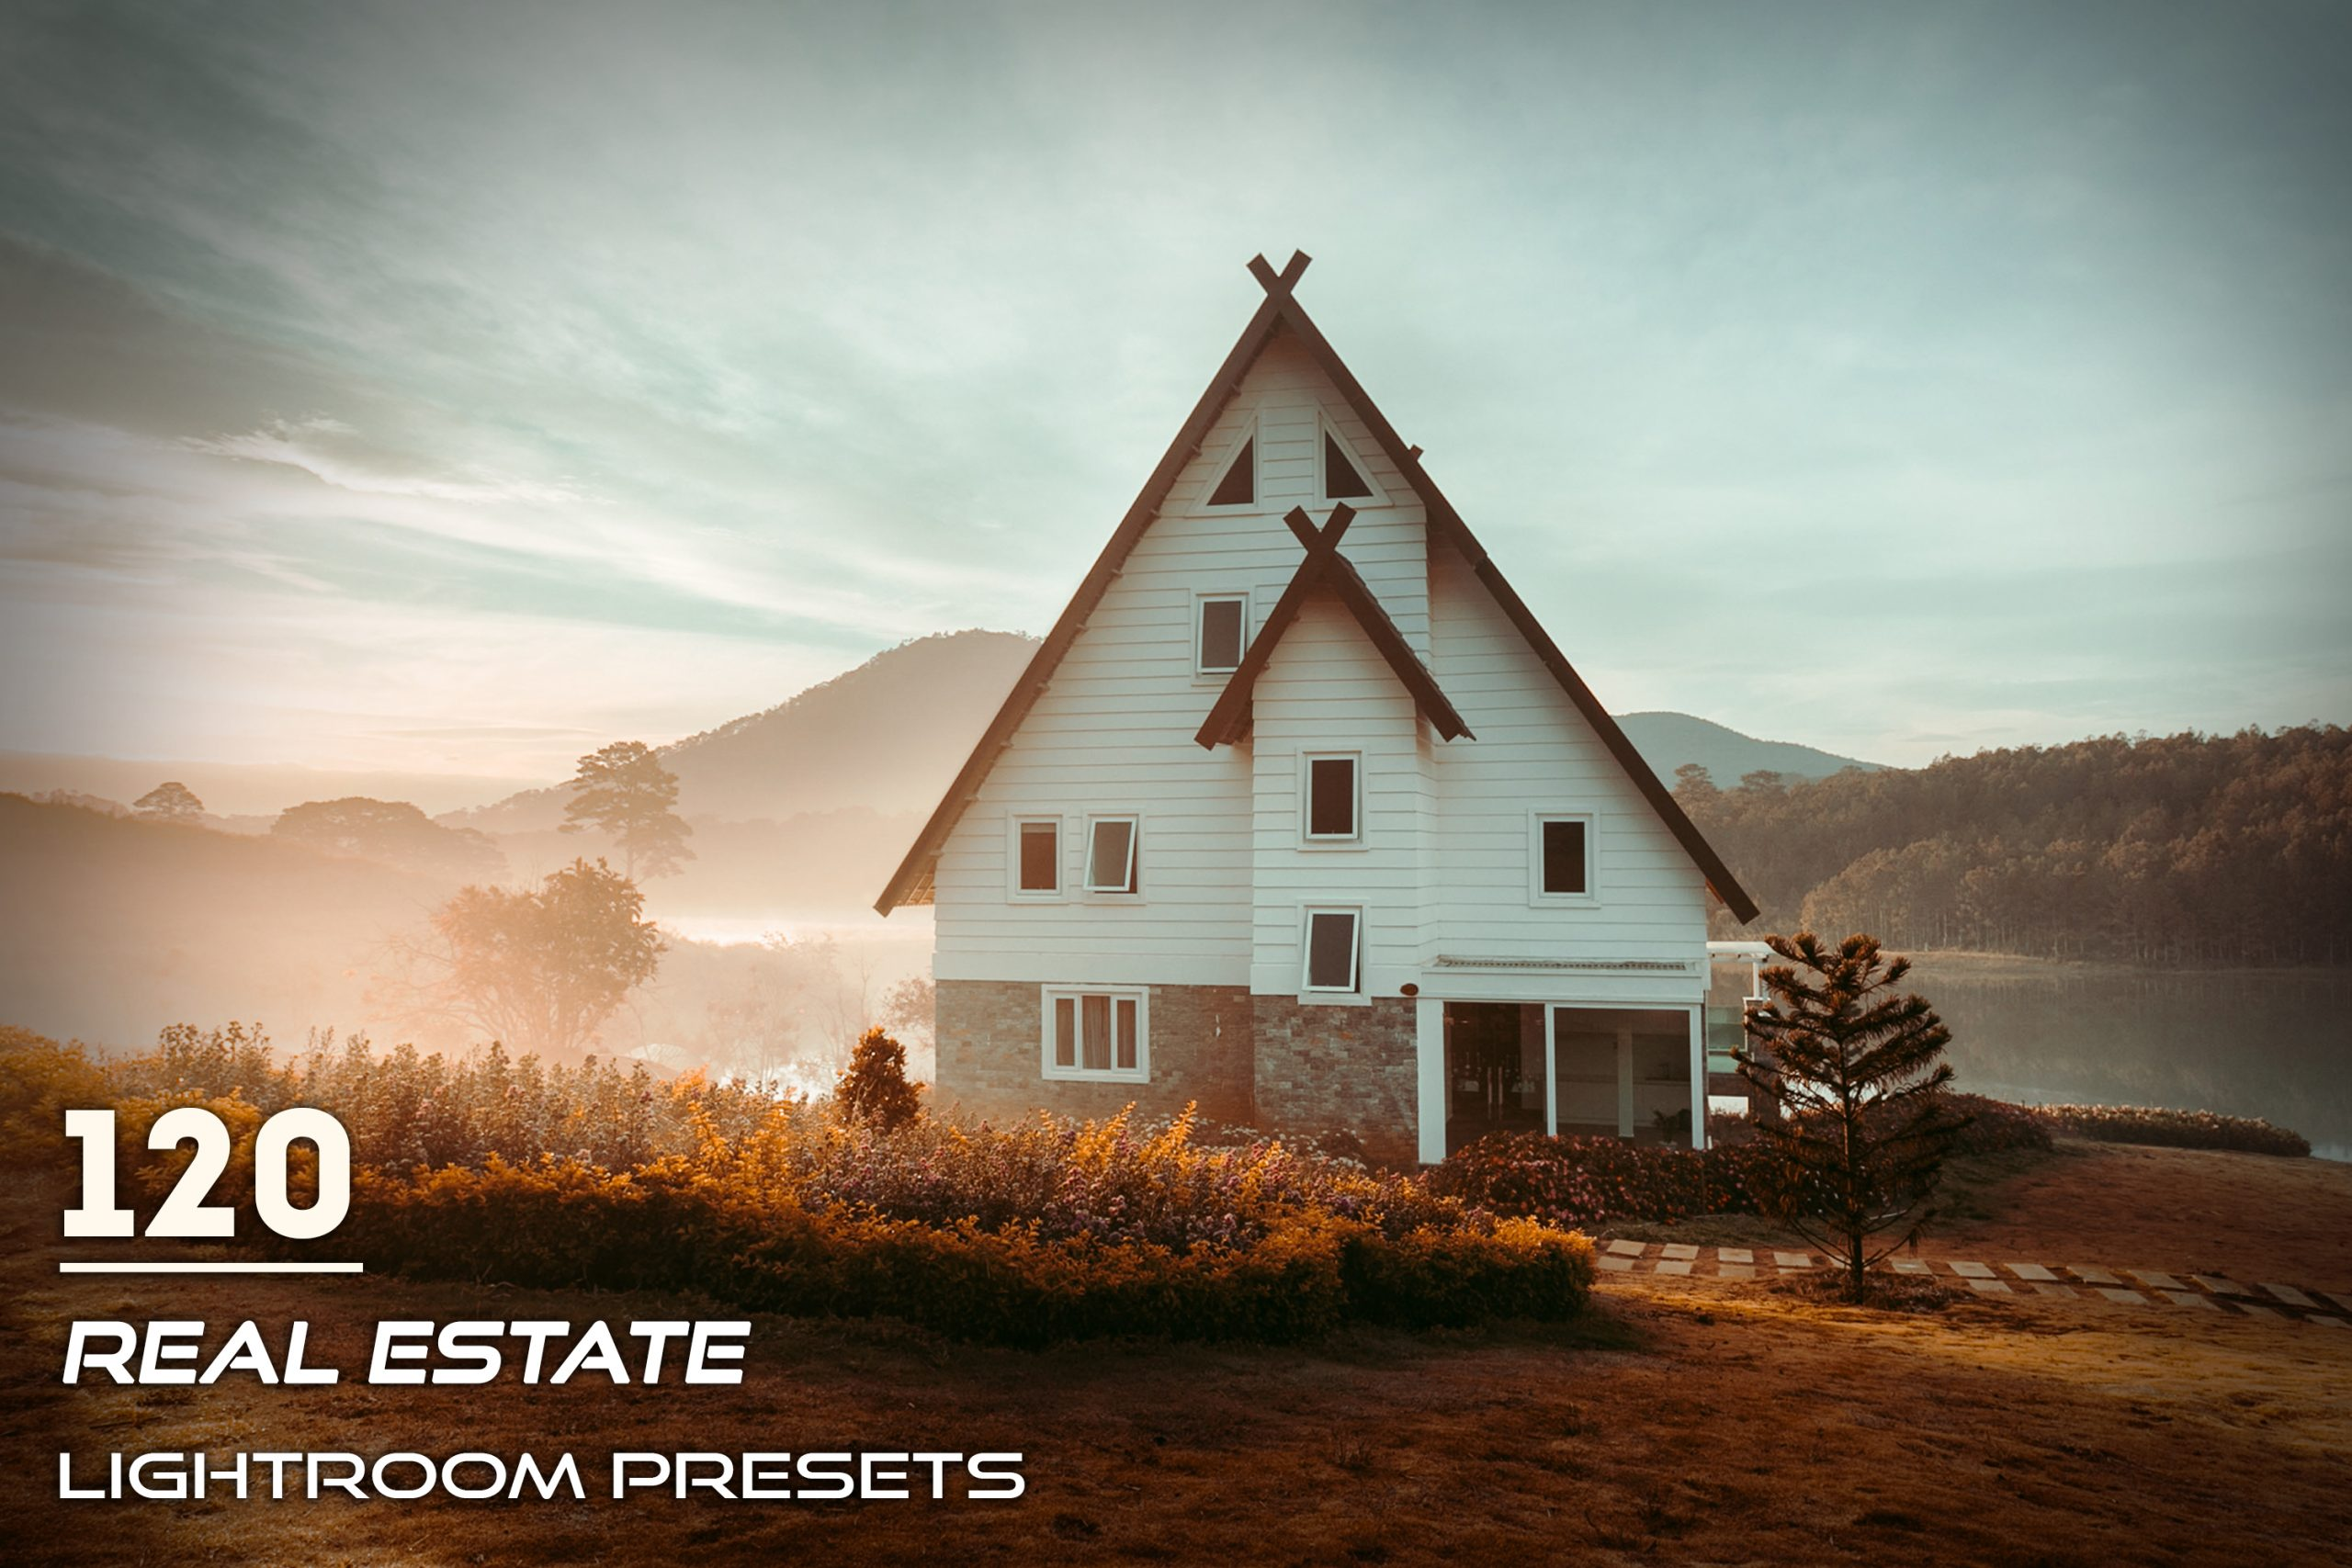 photo presets for real estate